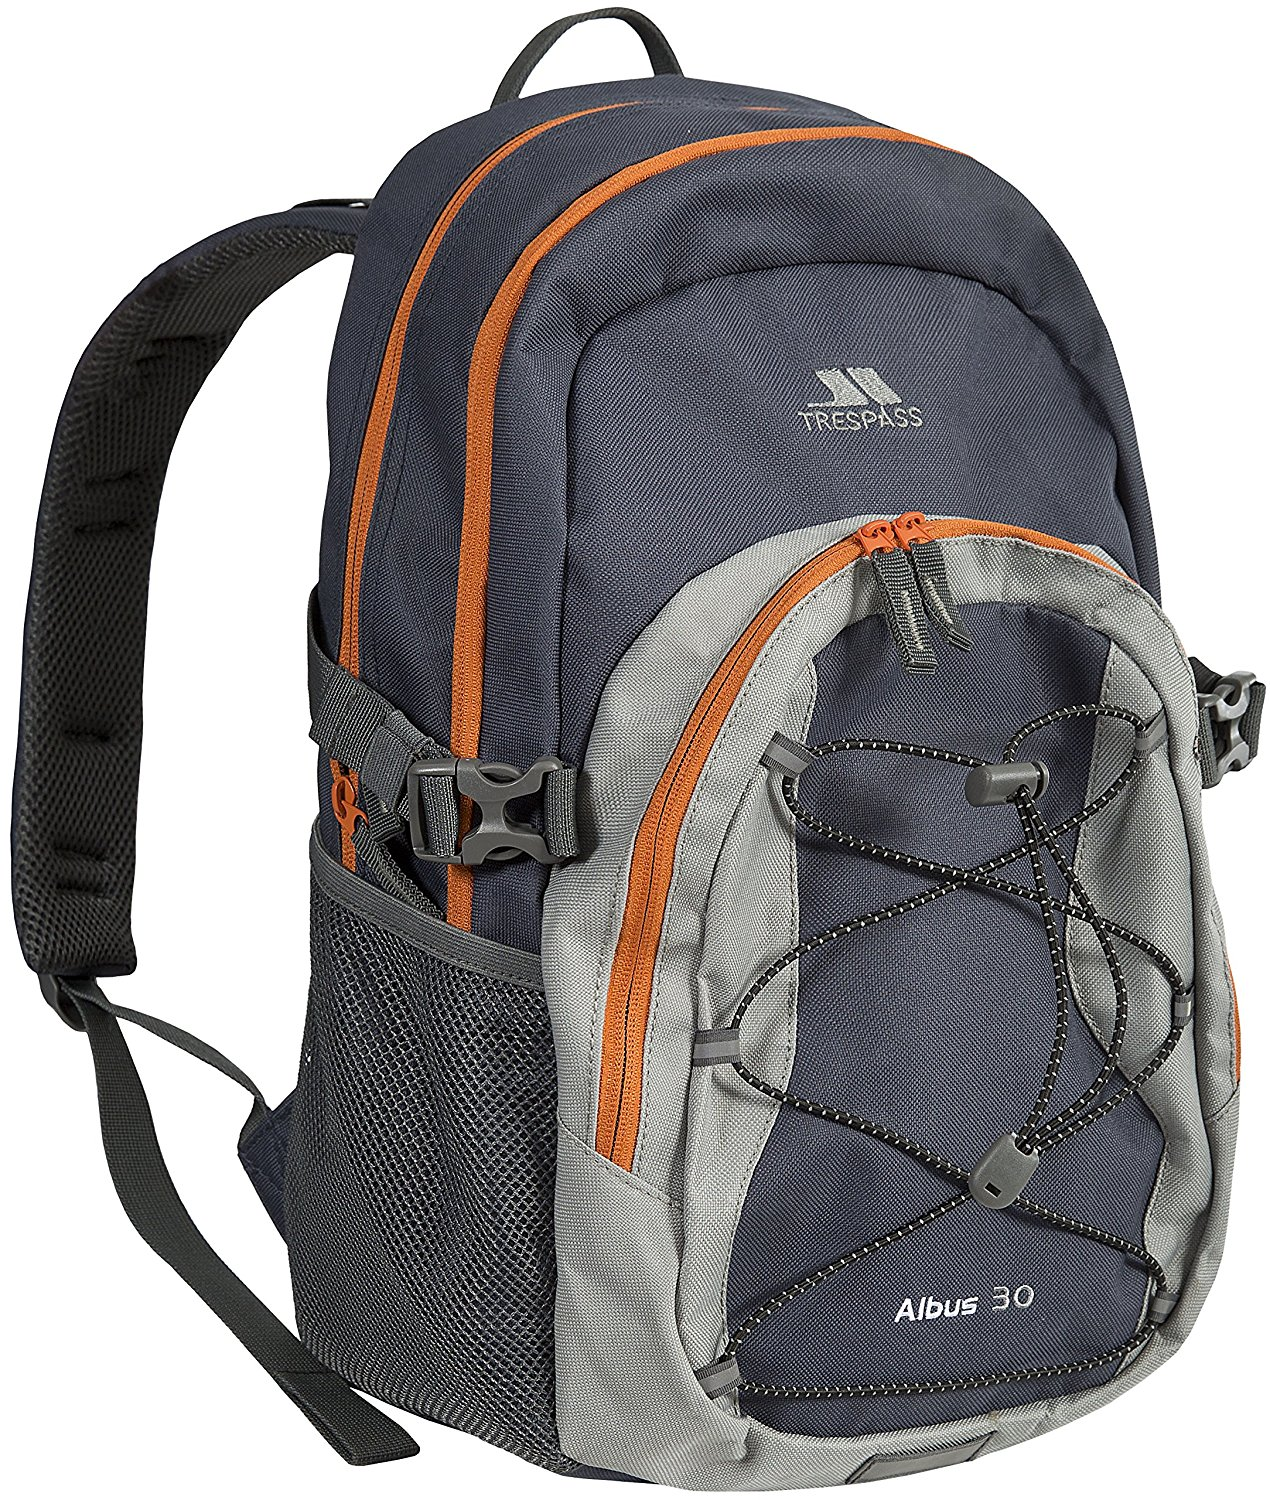 4 best backpack